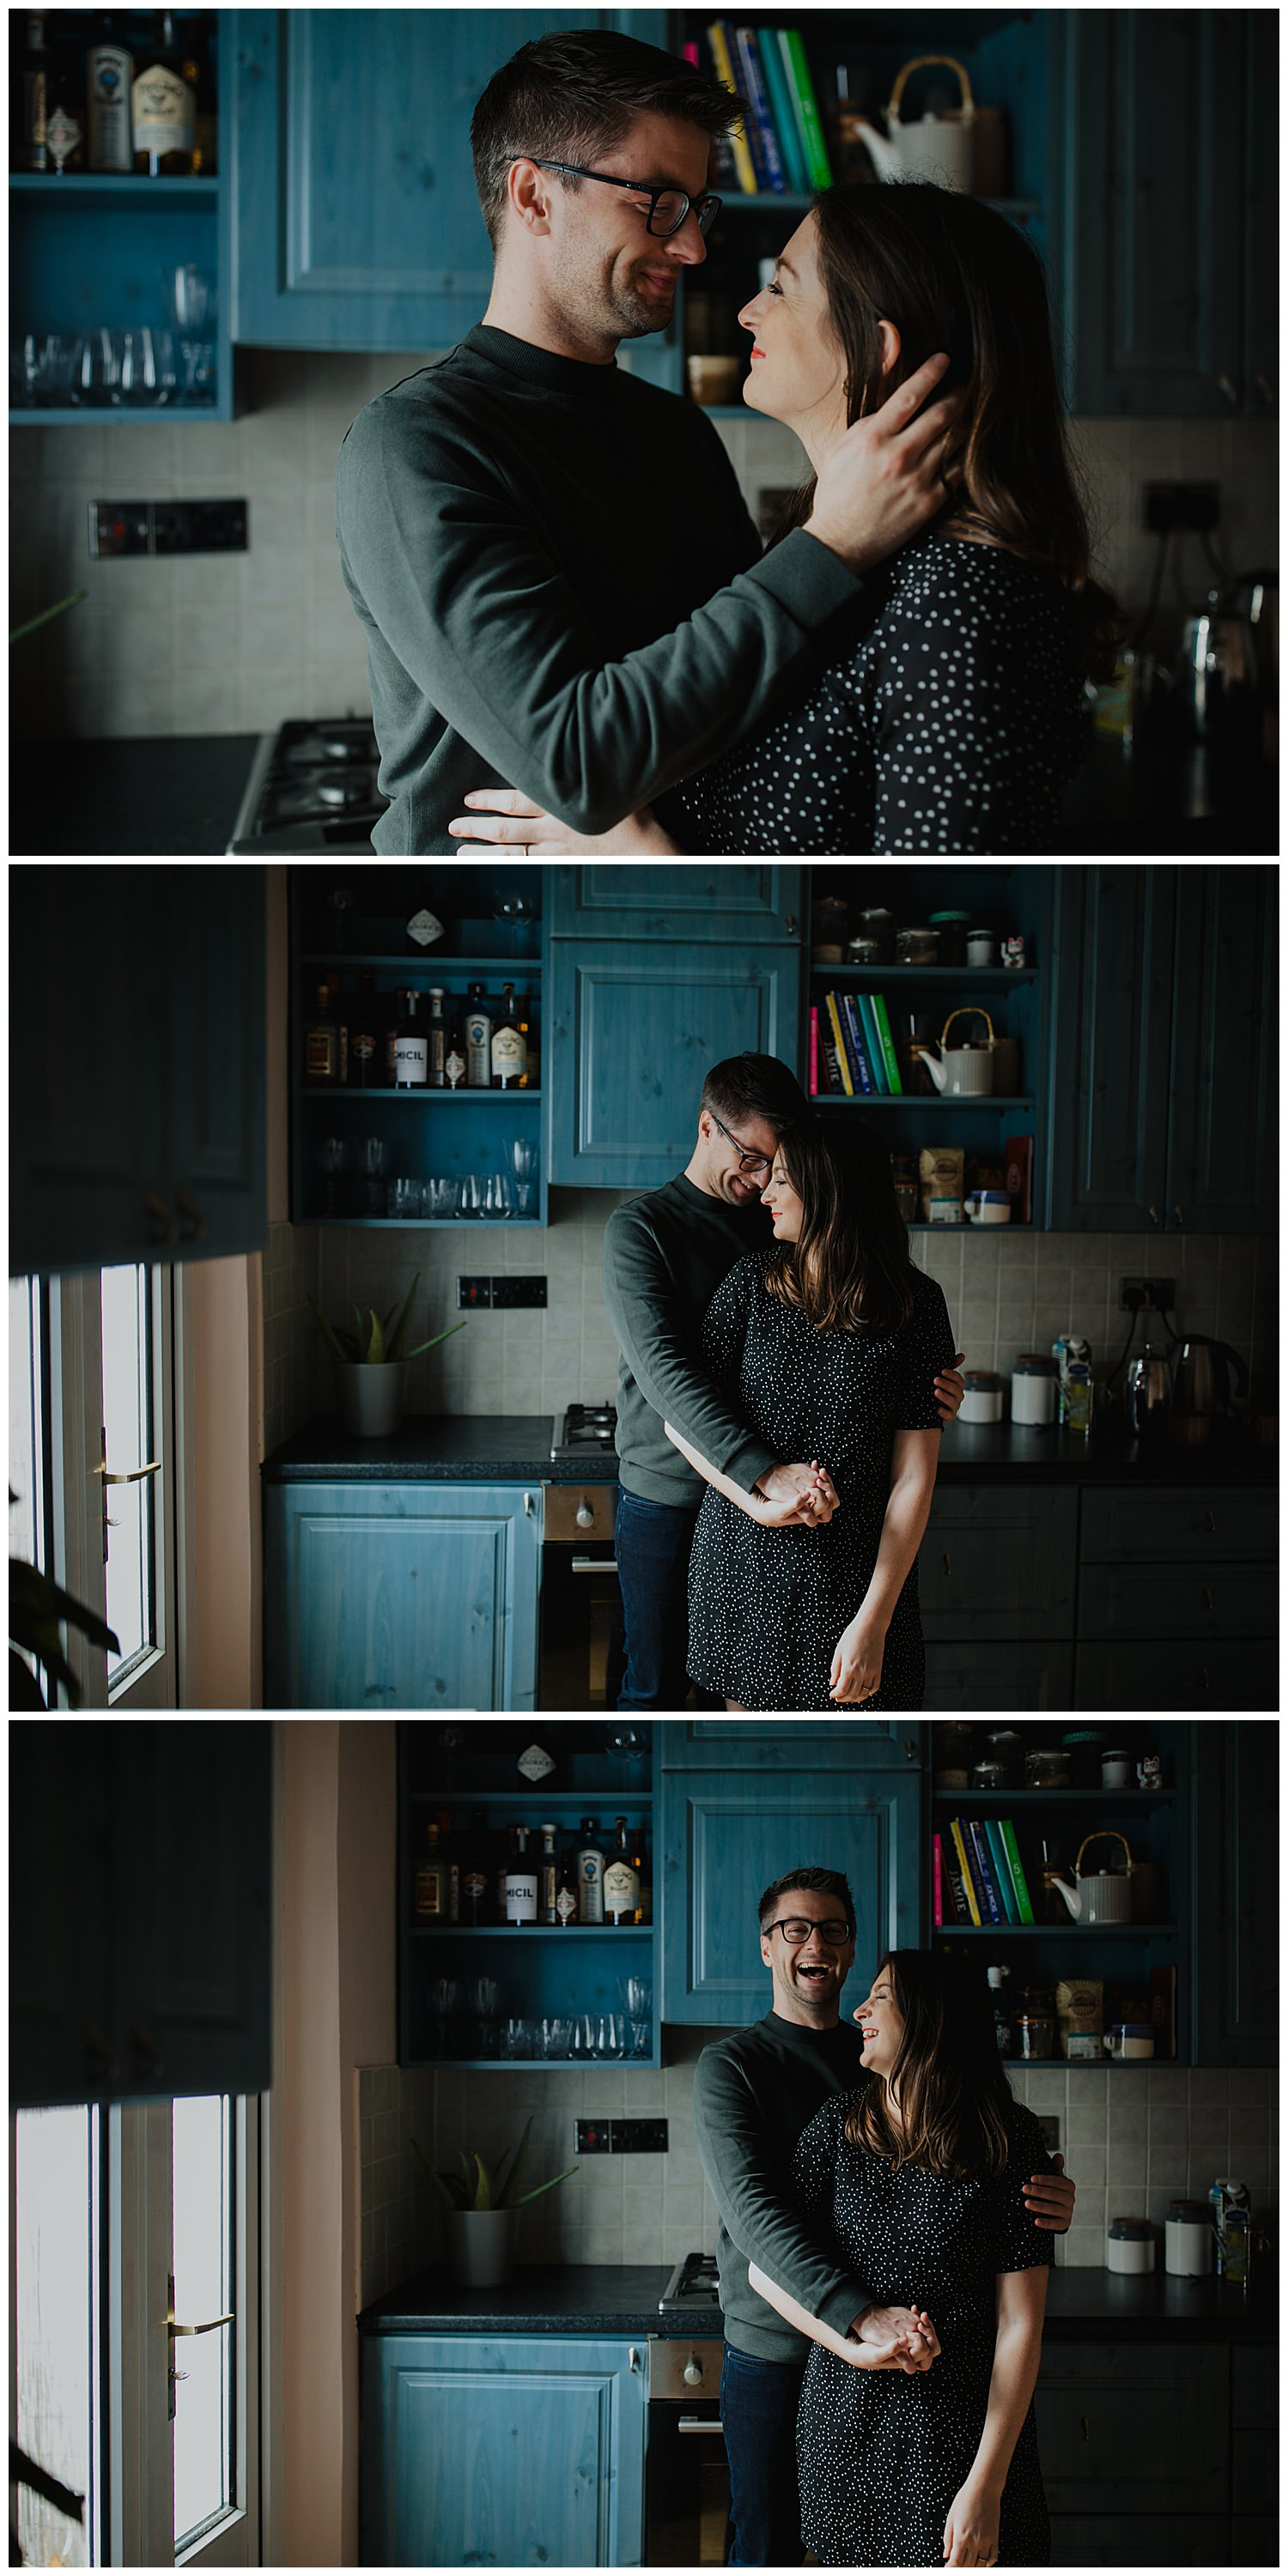 j-l-house-engagement-session-dublin-wedding-photographer-livia-figueiredo_4.jpg